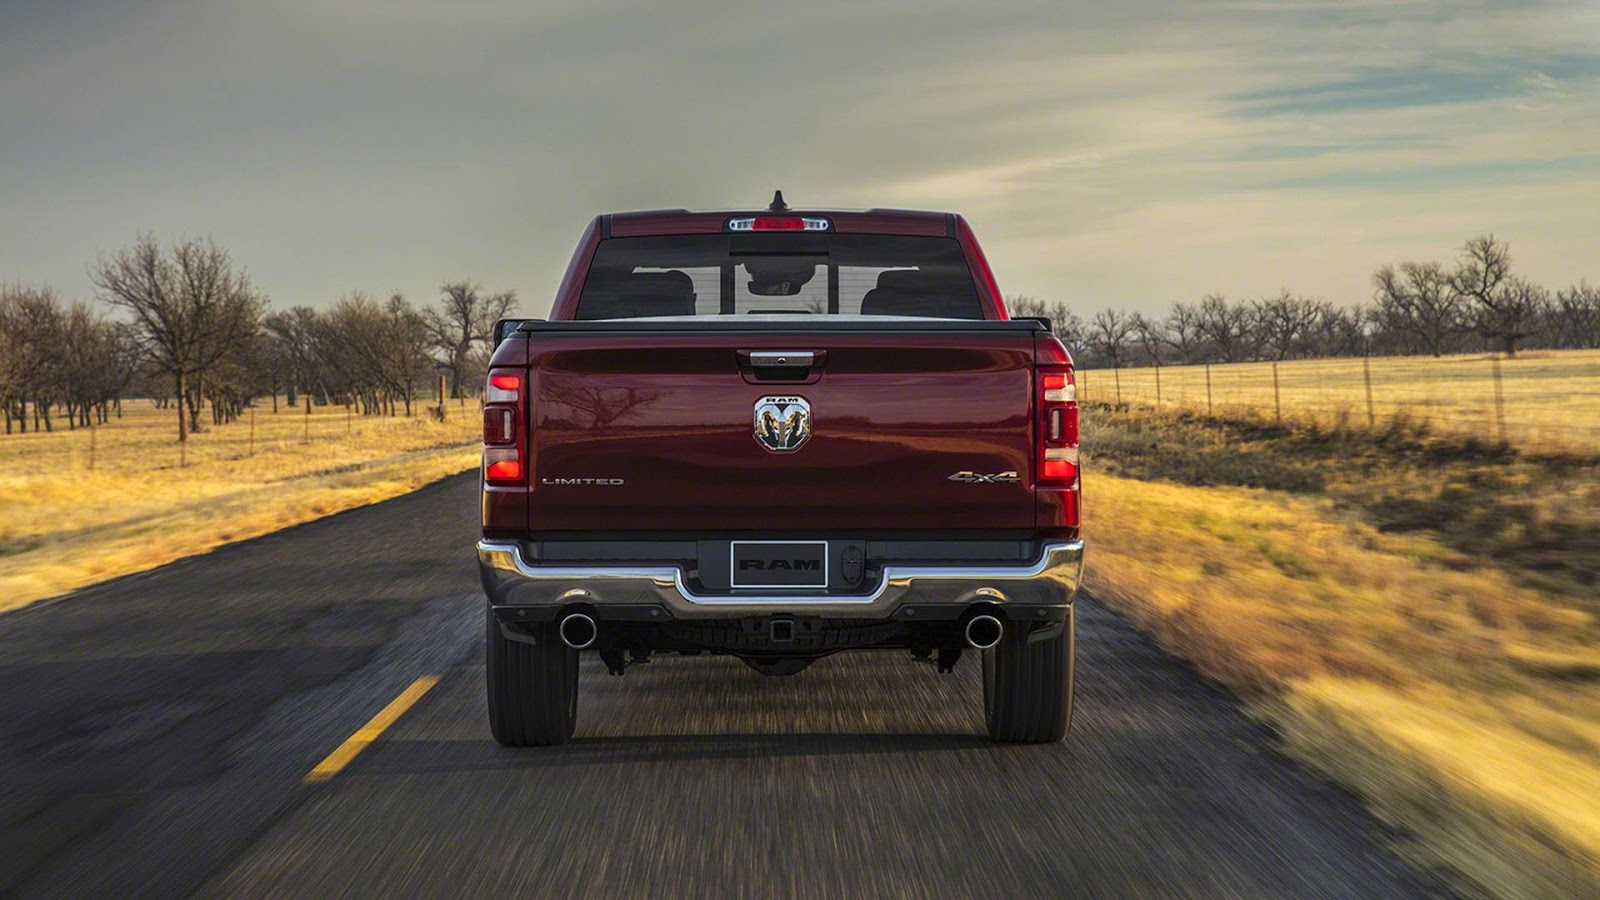 New Dodge Truck 2019 >> 2019 Ram 1500 Pickup Goes Official With 48-Volt Mild-Hybrid System - autoevolution